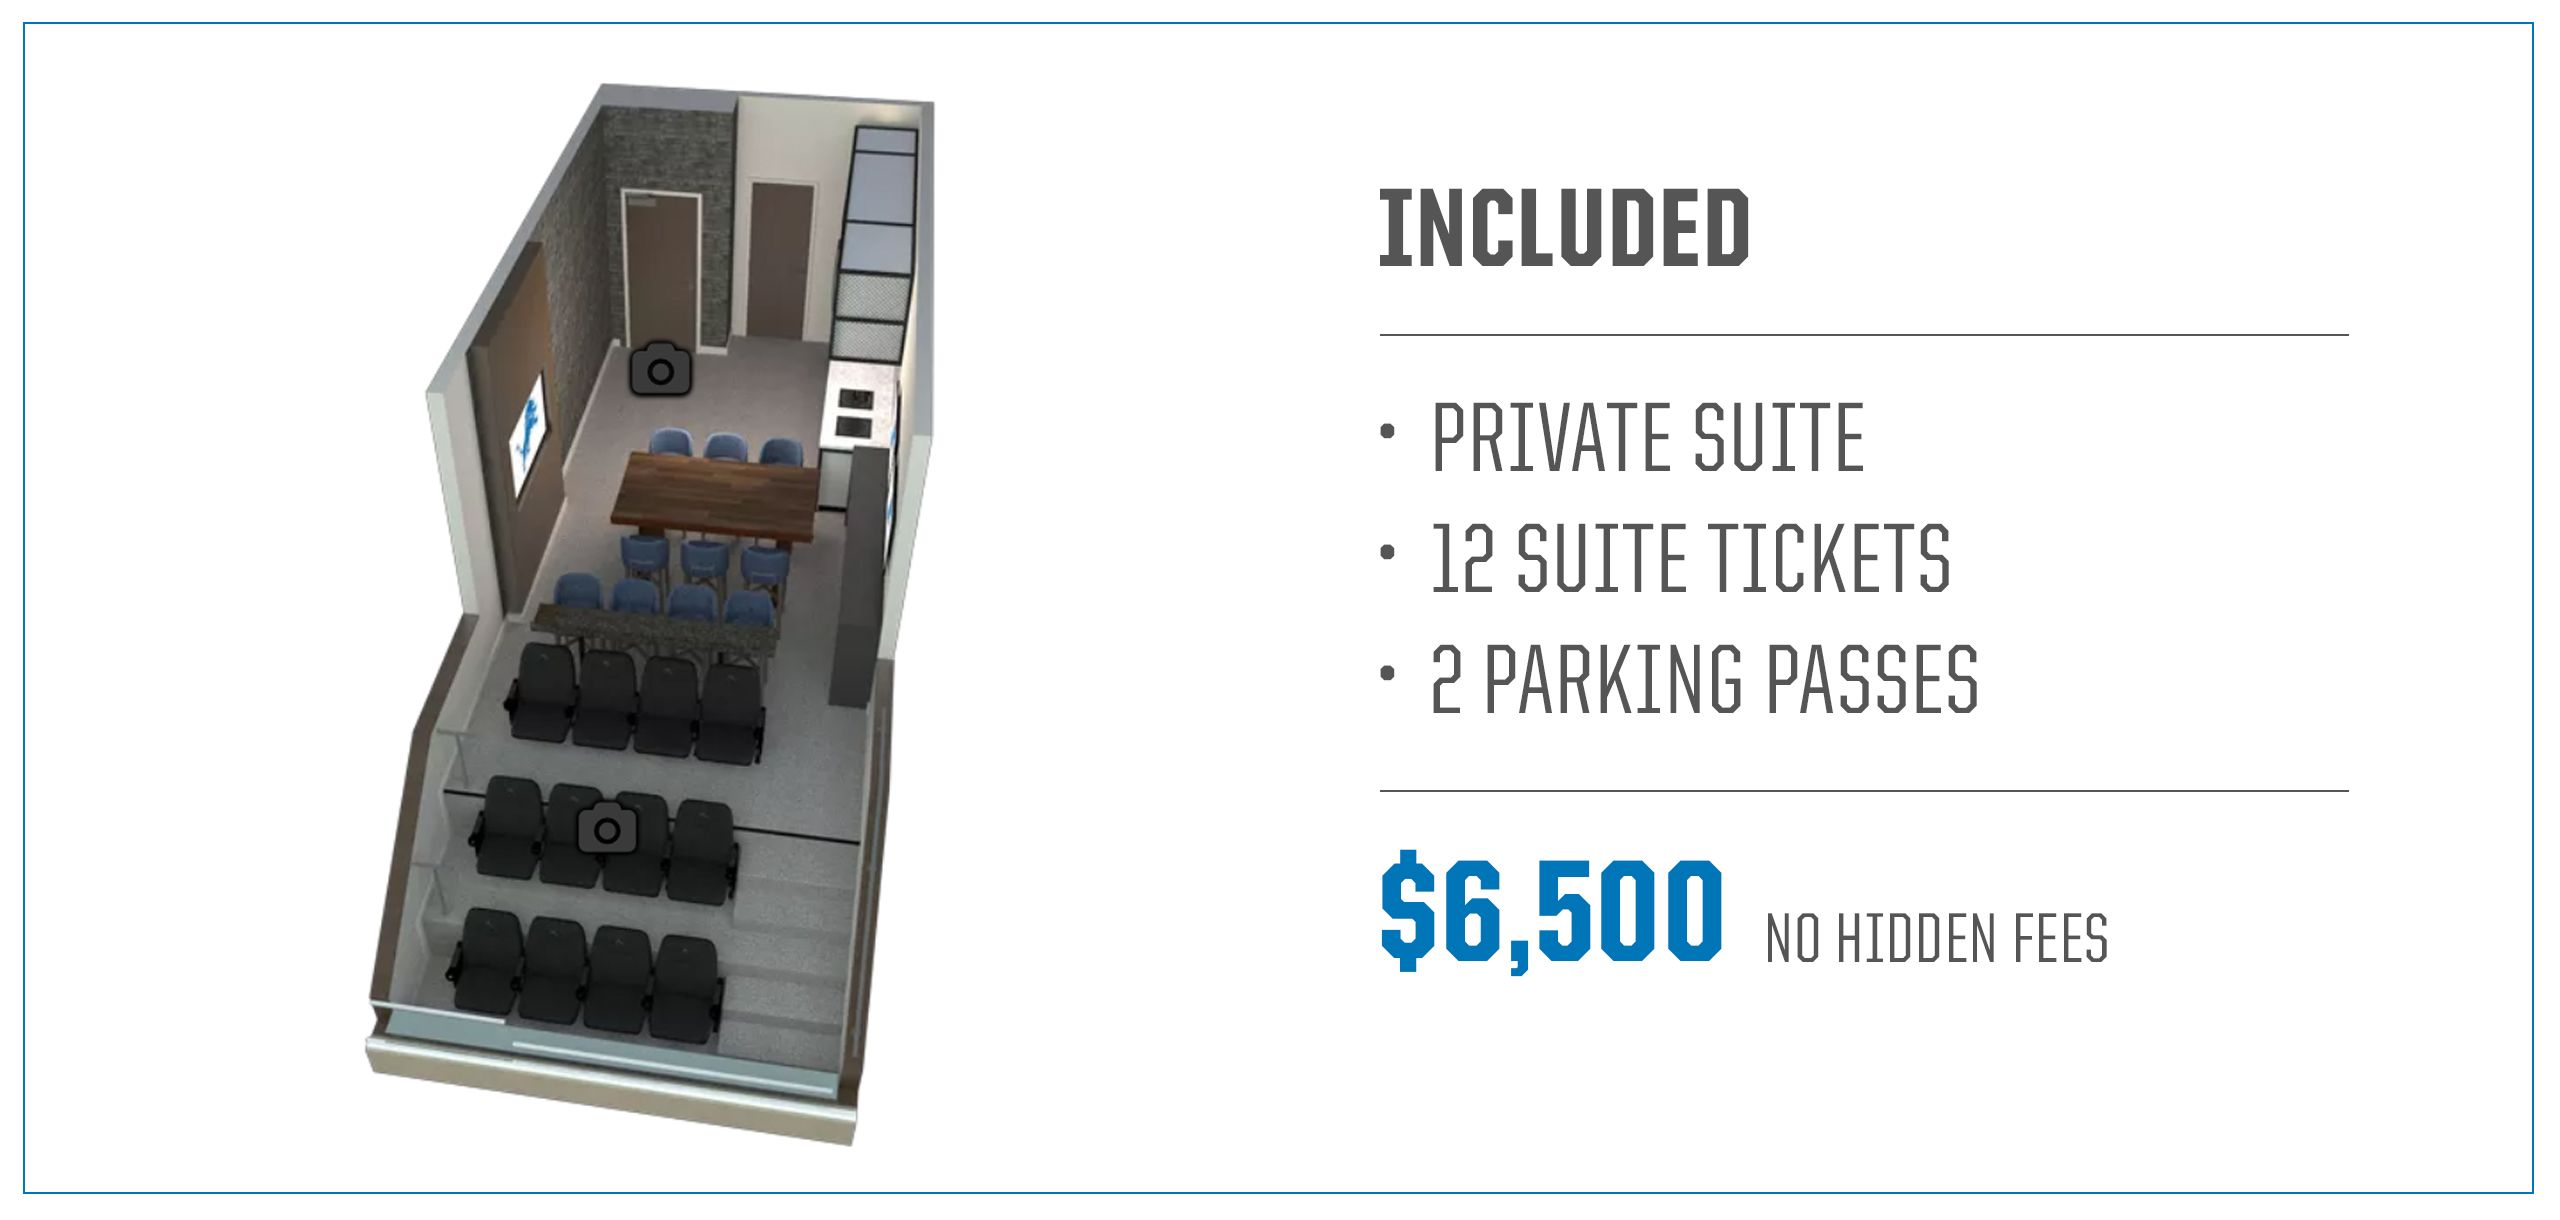 suite-430-kenny-purchase-information-map